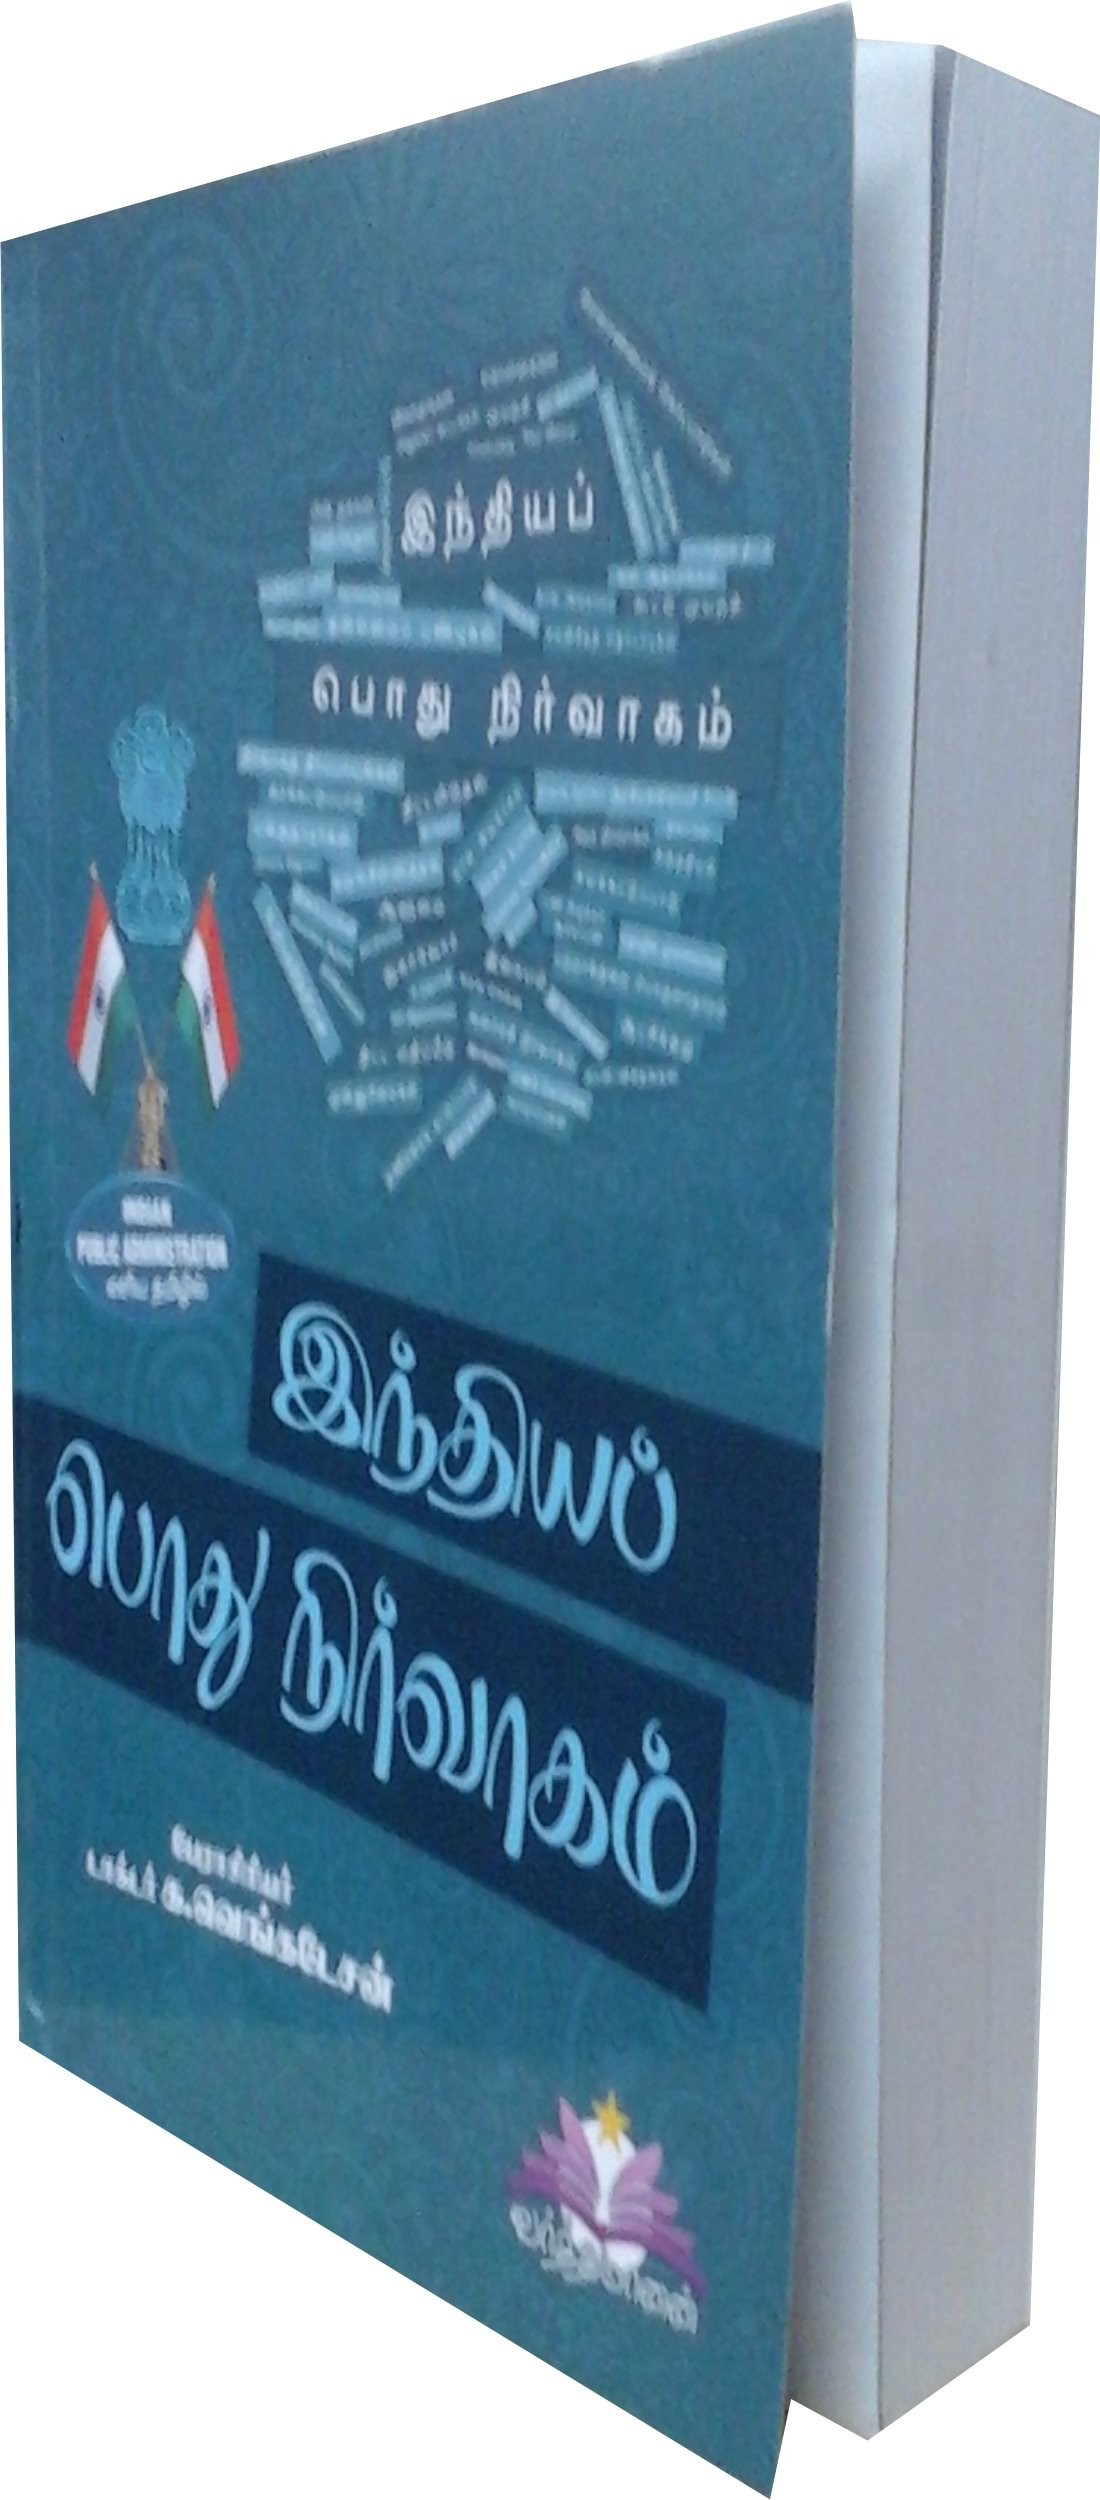 Buy Indian Public Administration (Tamil) (For TNPSC and UPSC